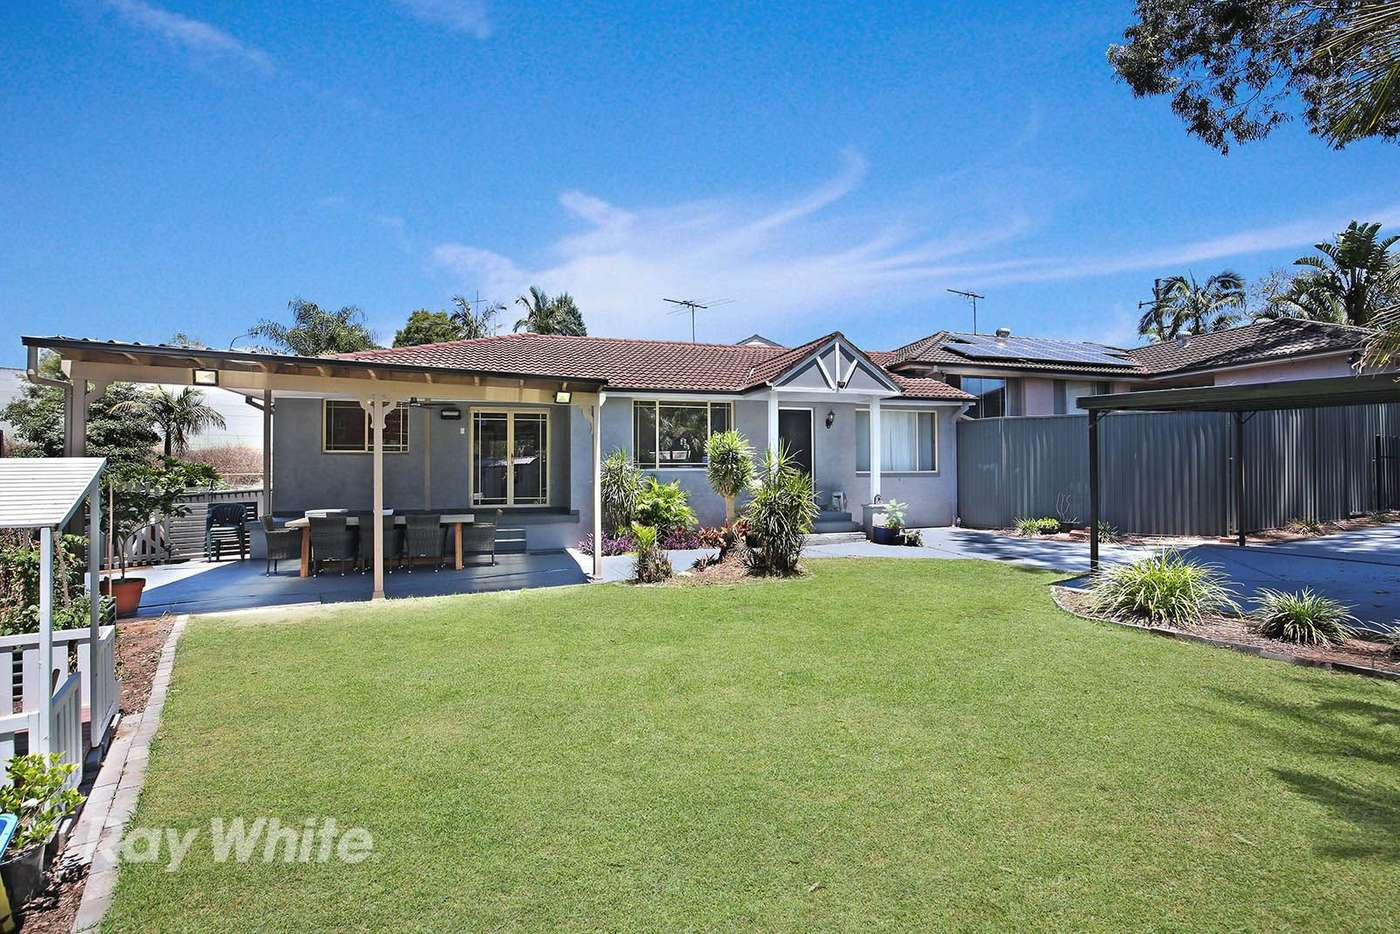 Main view of Homely house listing, 37A Valerie Avenue, Baulkham Hills NSW 2153